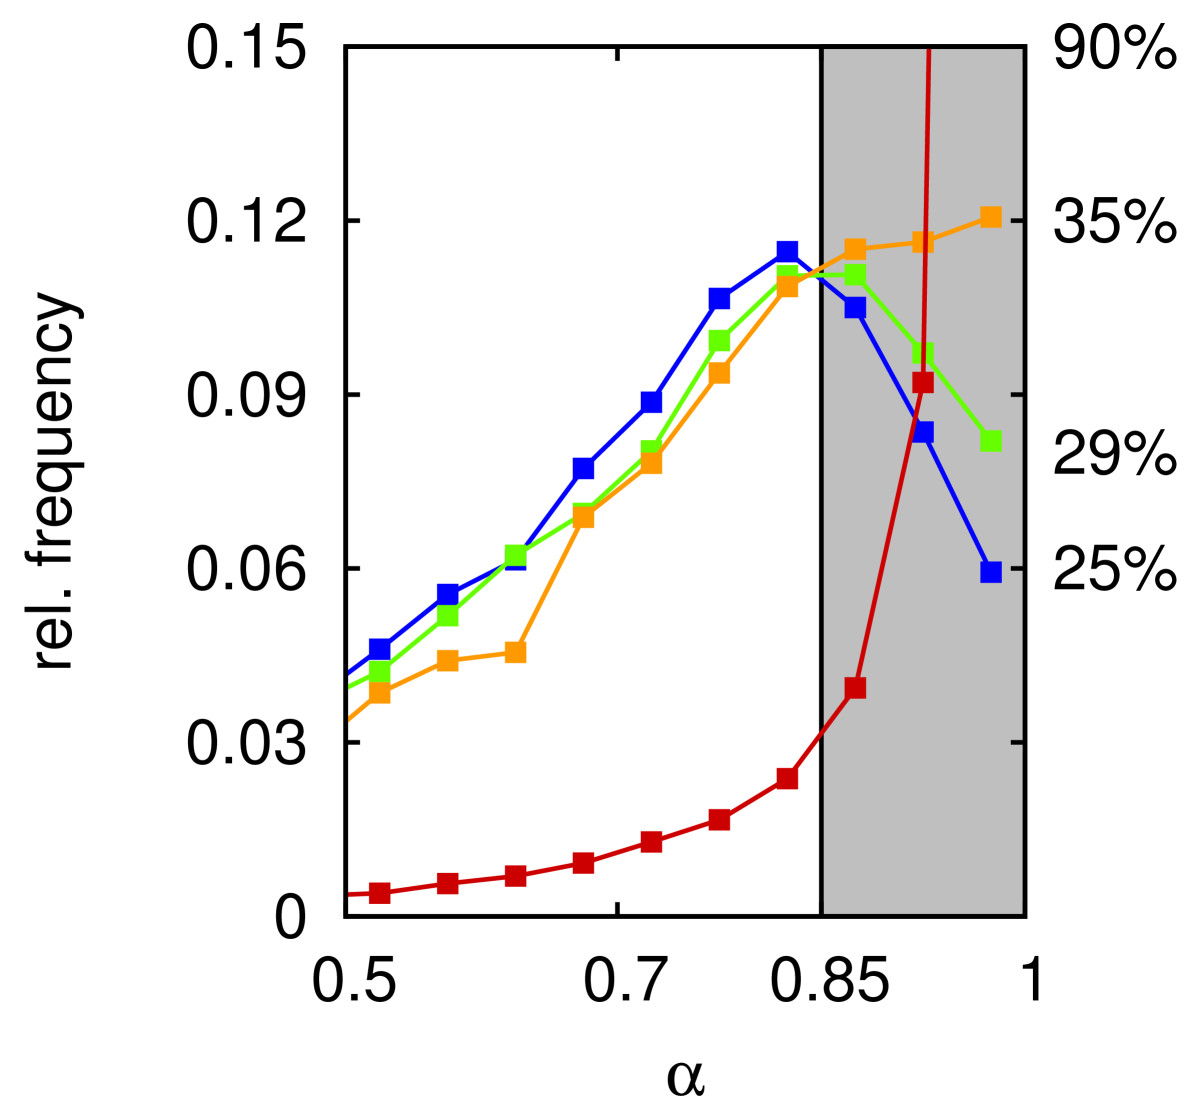 http://static-content.springer.com/image/art%3A10.1186%2F1752-0509-4-73/MediaObjects/12918_2009_Article_462_Fig5_HTML.jpg